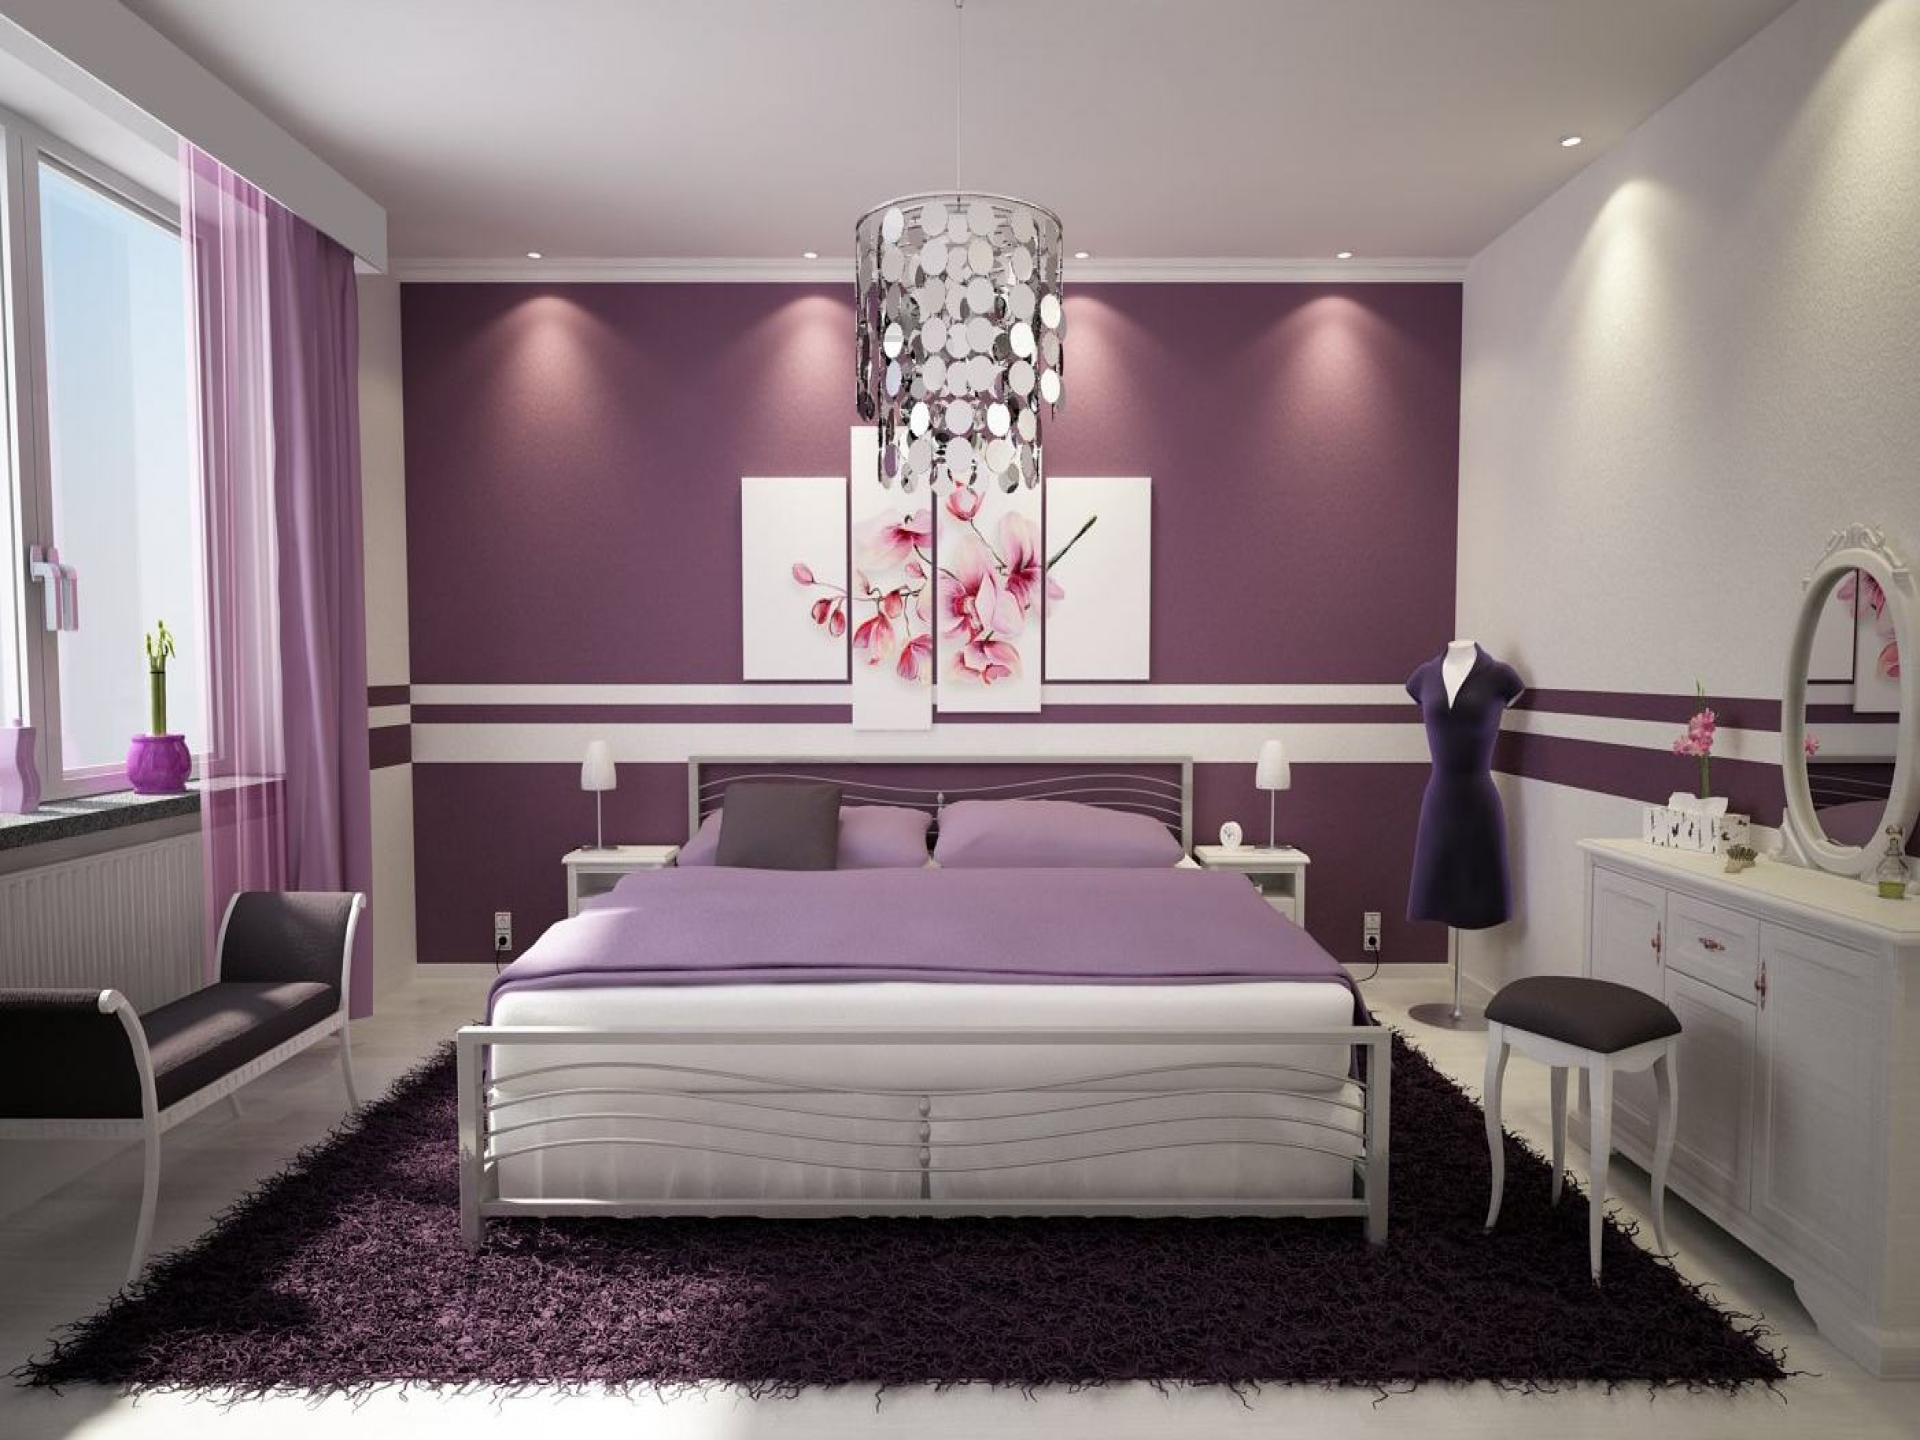 Violet bedroom color ideas - 42 Gorgeous Grey Bedrooms Purple And Gray Bedroom Decorating Ideas